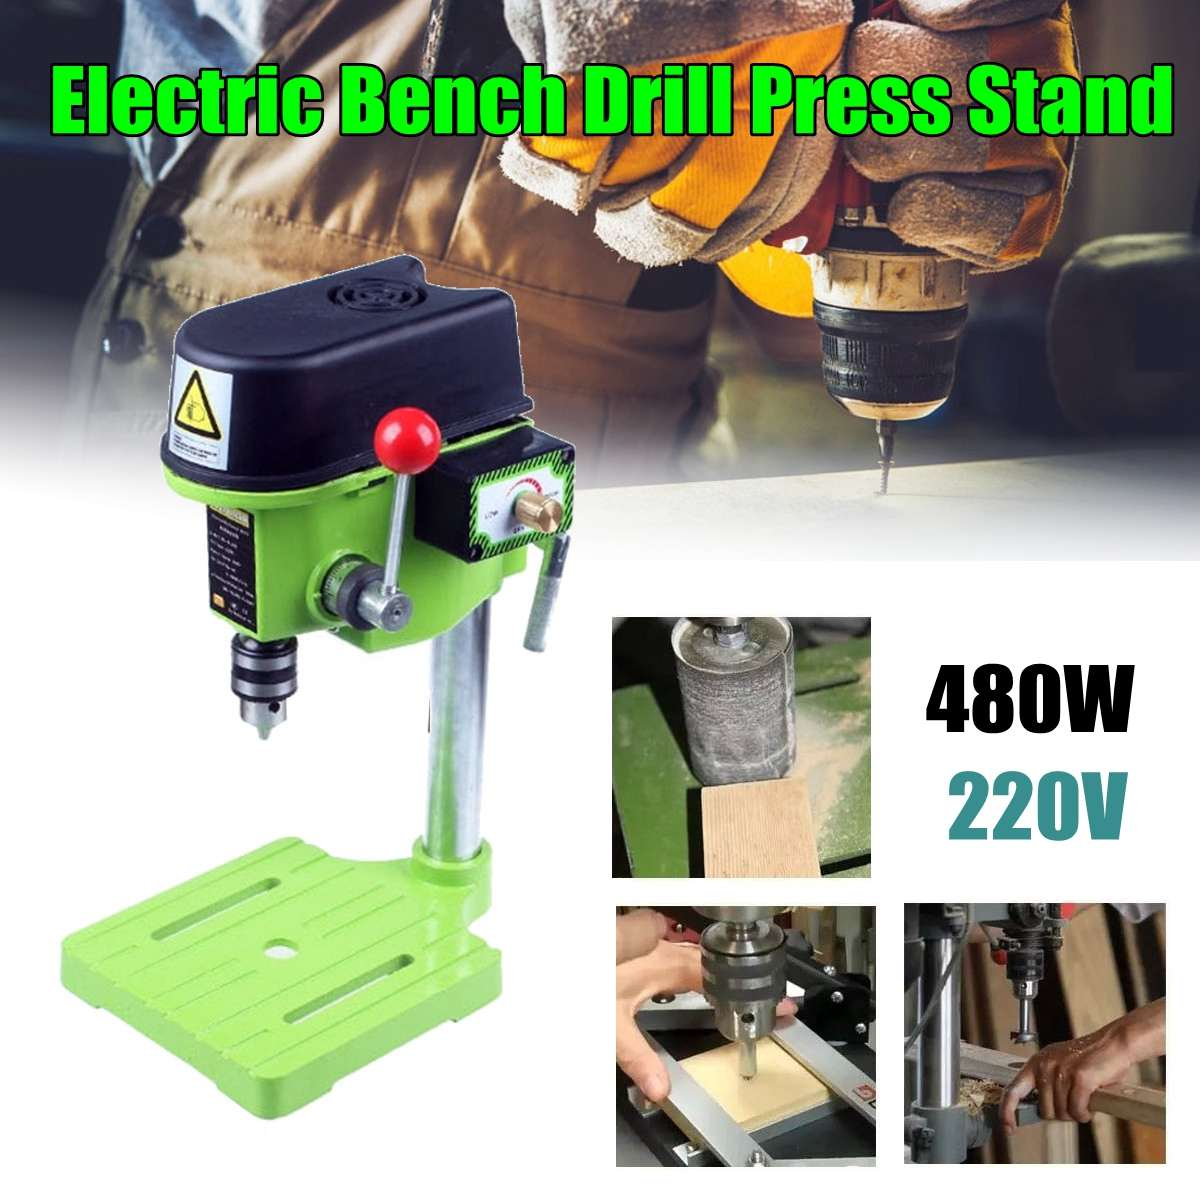 MINIQ BG 5159A Bench Drill Stand 480W Mini Electric Bench Drilling Machine Driller Stans